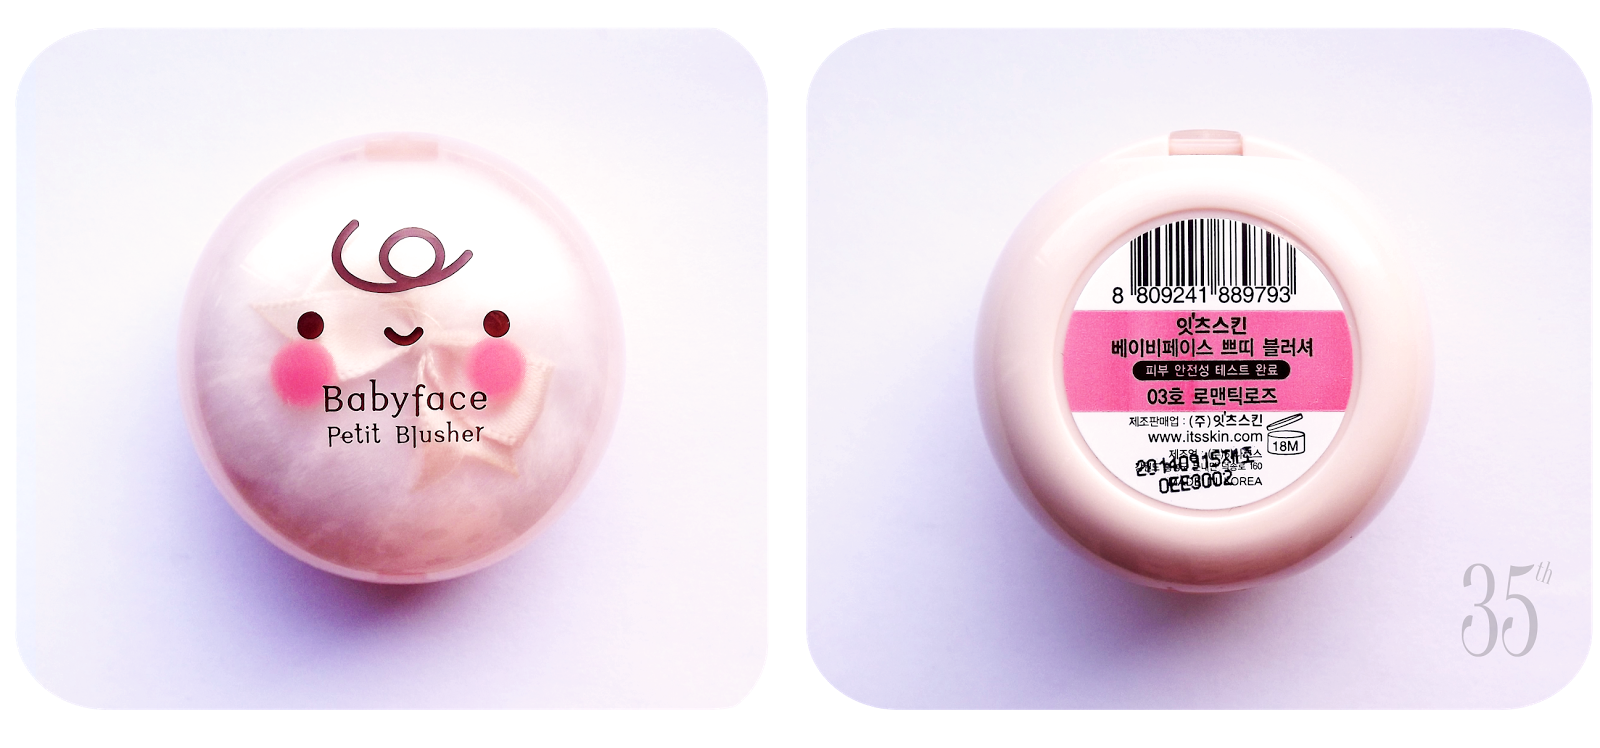 It's Skin Babyface Blusher in #03 Romantic Rose